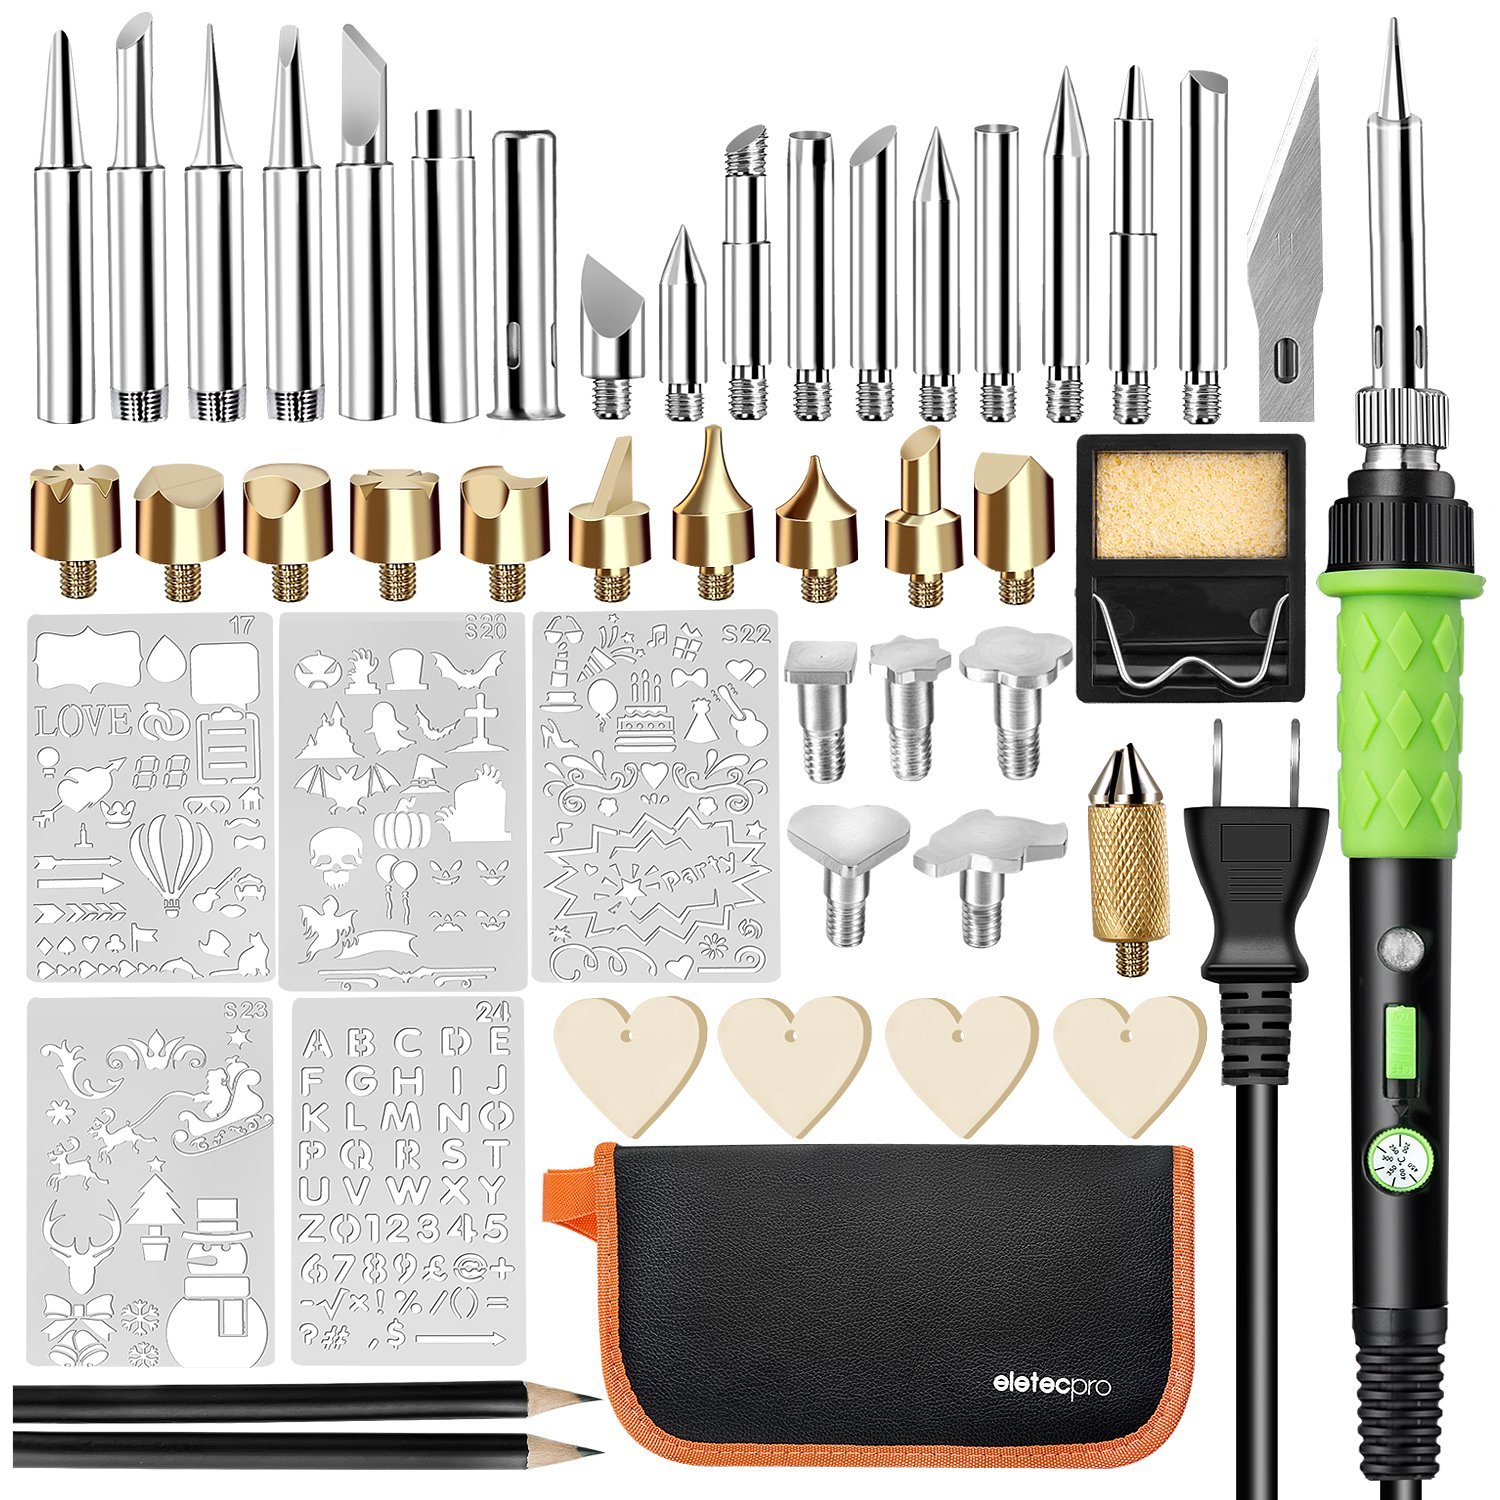 EletecPro Wood Burning Kit,46PCS Professional Pyrography Pen Set 60W/110V Temperature Adjustable On-Off Switch WoodBurner Soldering Iron Tool,5 Stencils+32 Tips,2 Pencils+Carry Case (46pcs Set)